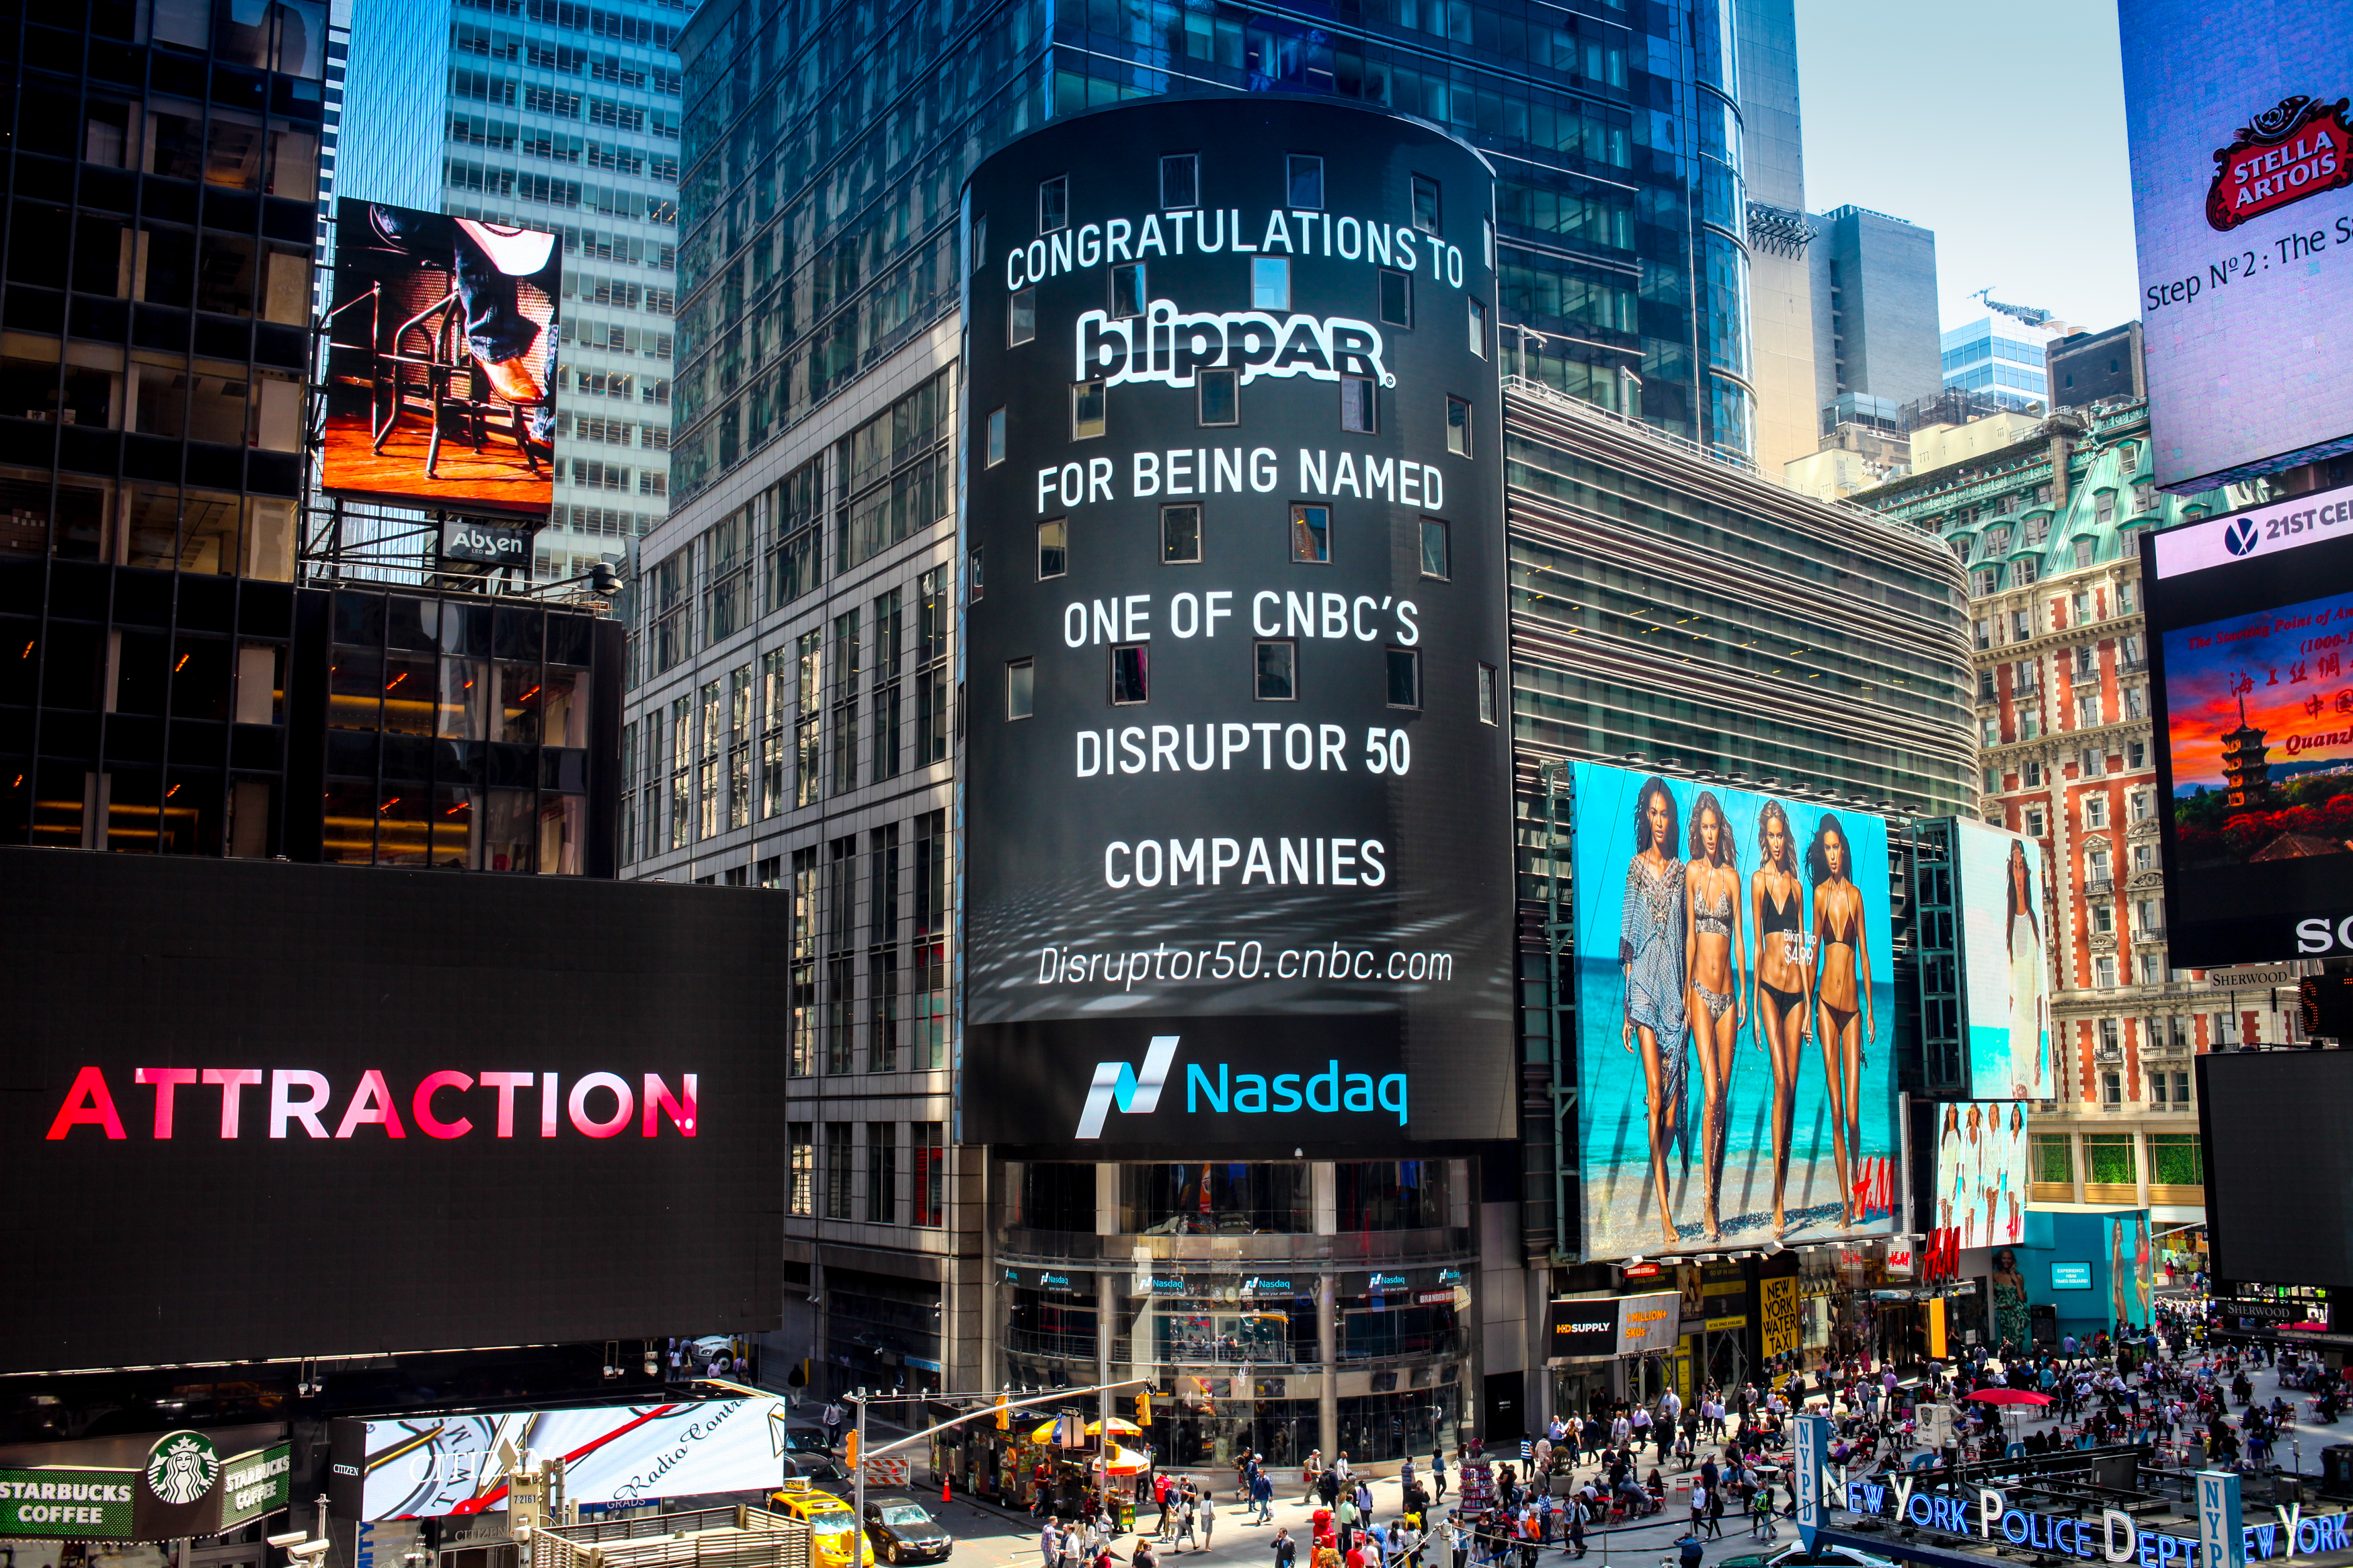 Blippar on NASDAQ Times Square - May 2015